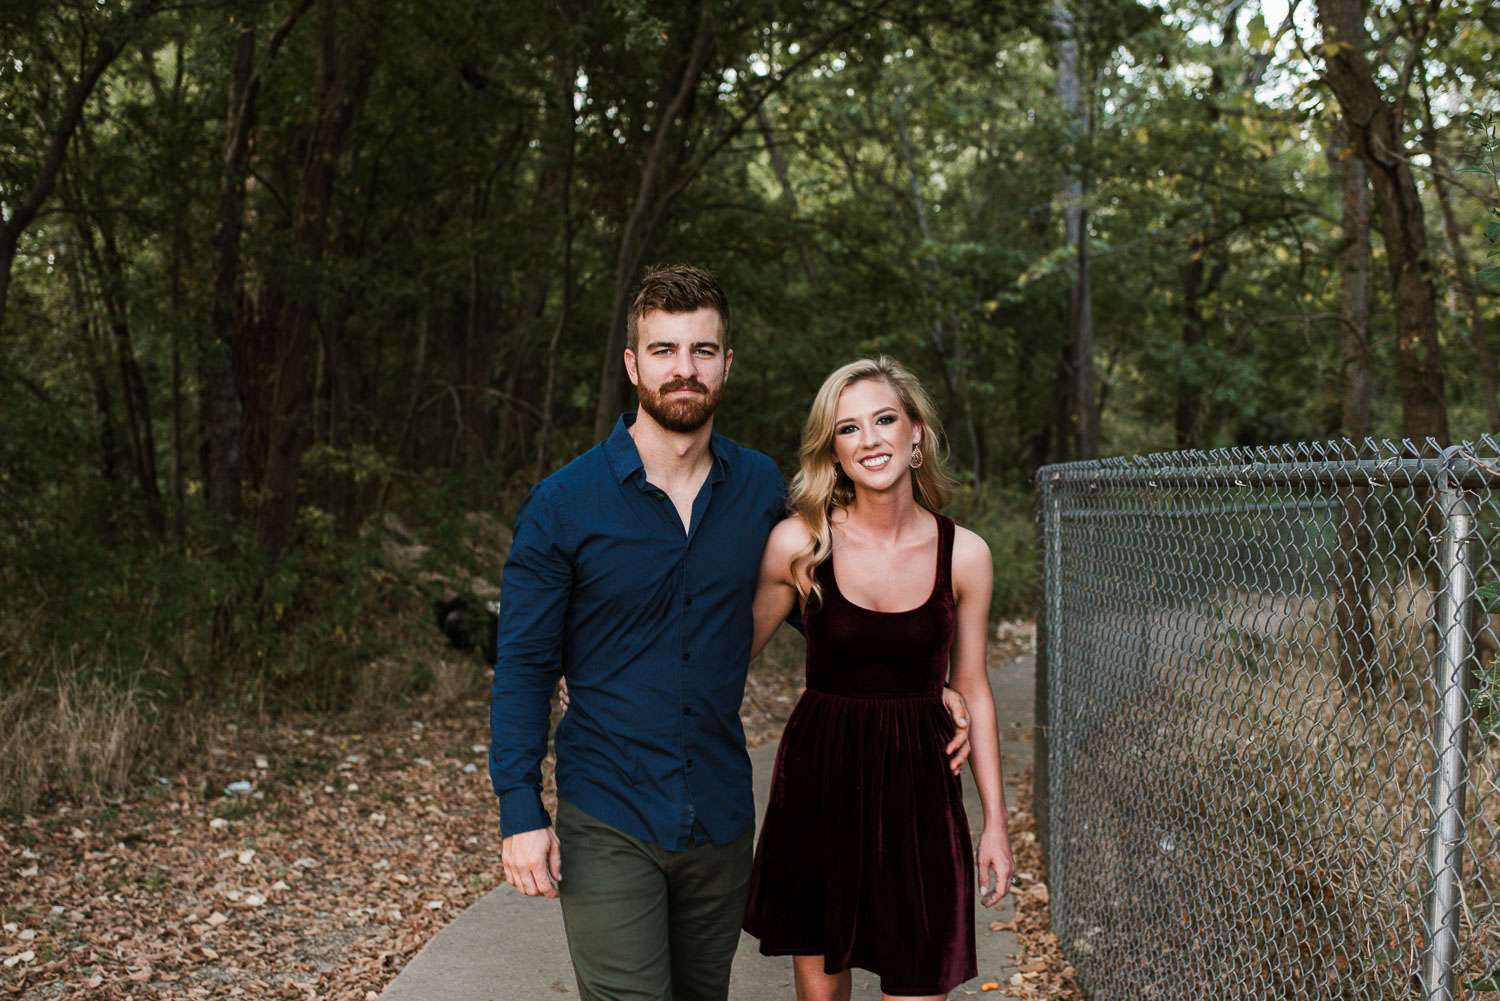 josh - lindsey - engagement - photos - alrington - texas - river - legacy - park-16.jpg